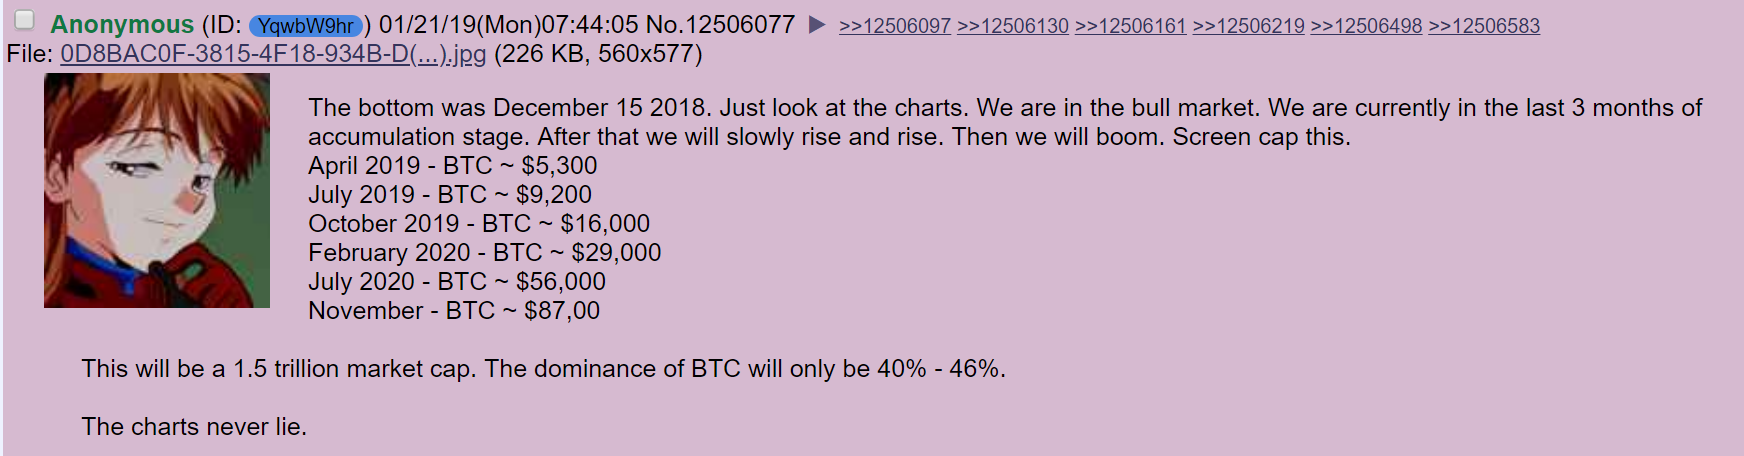 Did 4Chan Really Predict Bitcoin's Price Rise?